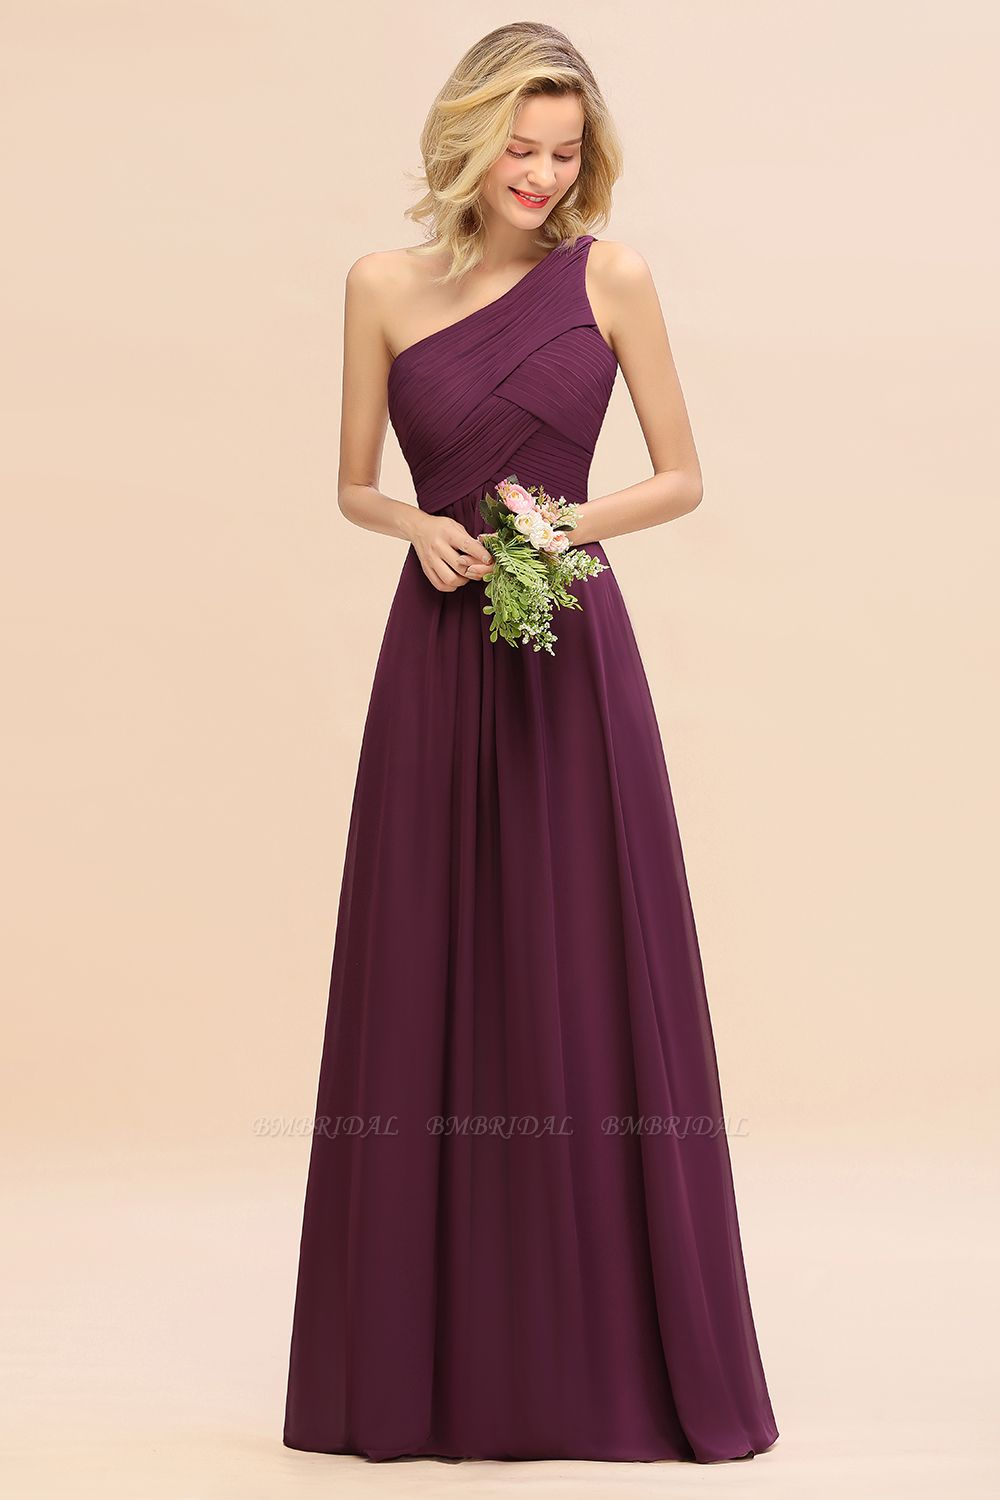 Chic One Shoulder Ruffle Grape Chiffon Bridesmaid Dresses Online